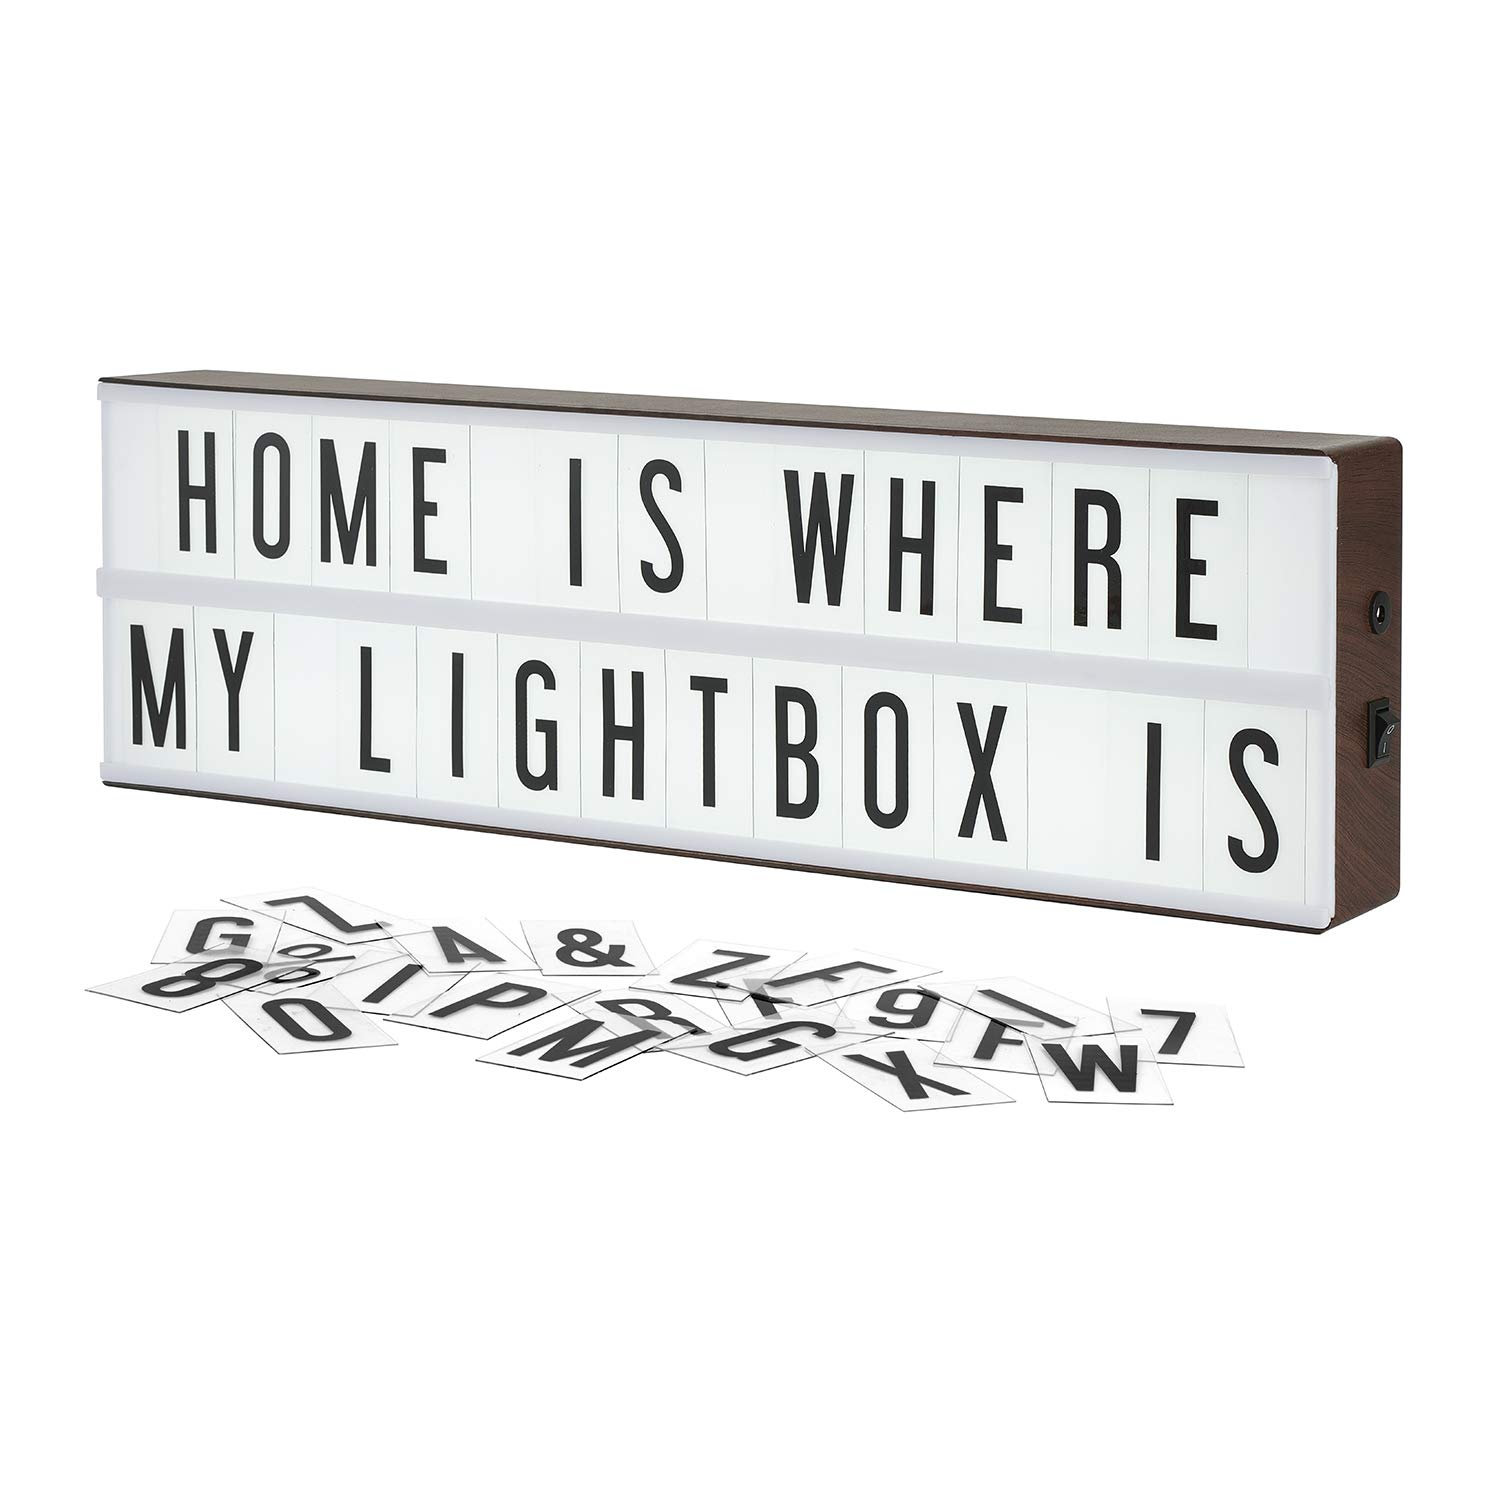 My Cinema Lightbox The Vintage Edition LED Marquee Light Box, Includes 140 Letters, Numbers, and Symbols to Make Your Own Sign, Extra Long 2 Row Length Fits 14 Across, Faux Wood Finish, Wall Mountable by My Cinema Lightbox